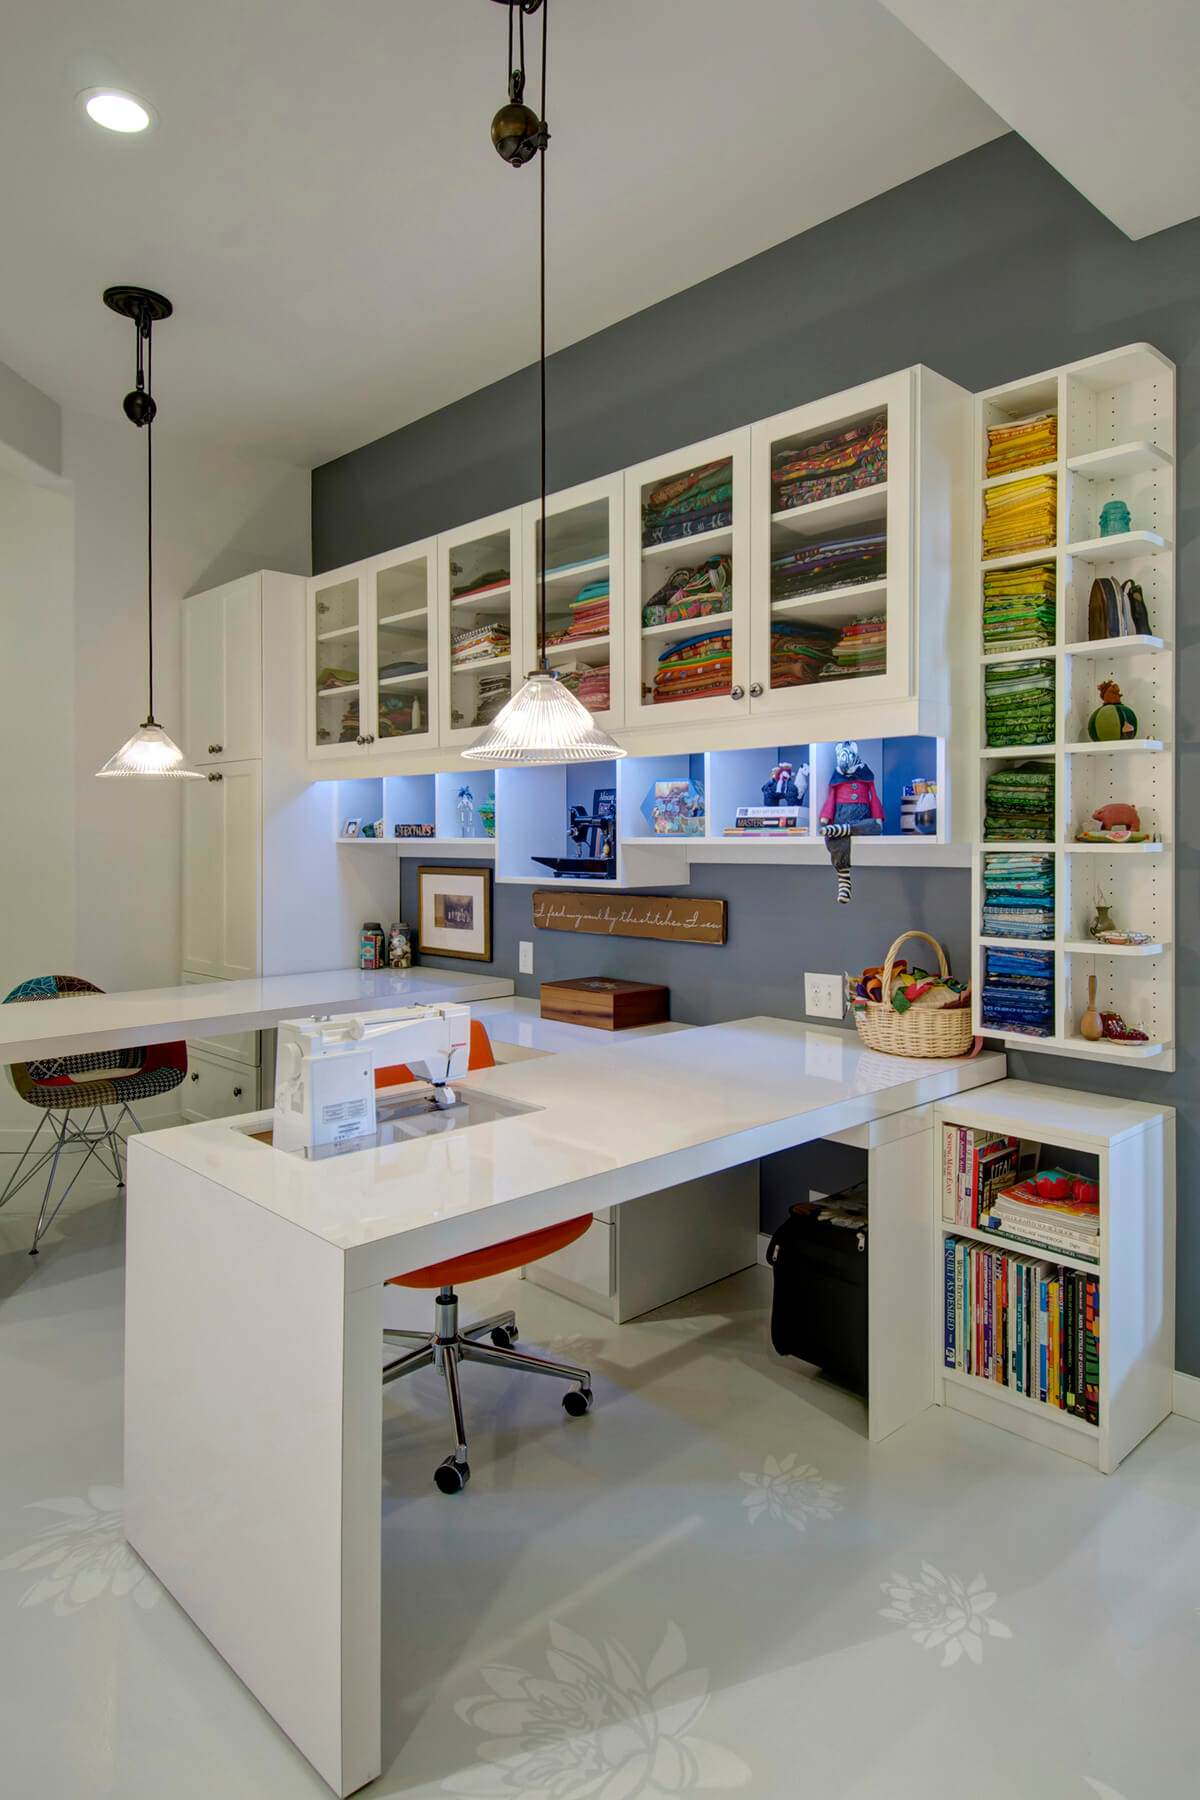 Spacious Sewing Room In Contemporary Design In Whit And Grey With Tall  Ceilings.